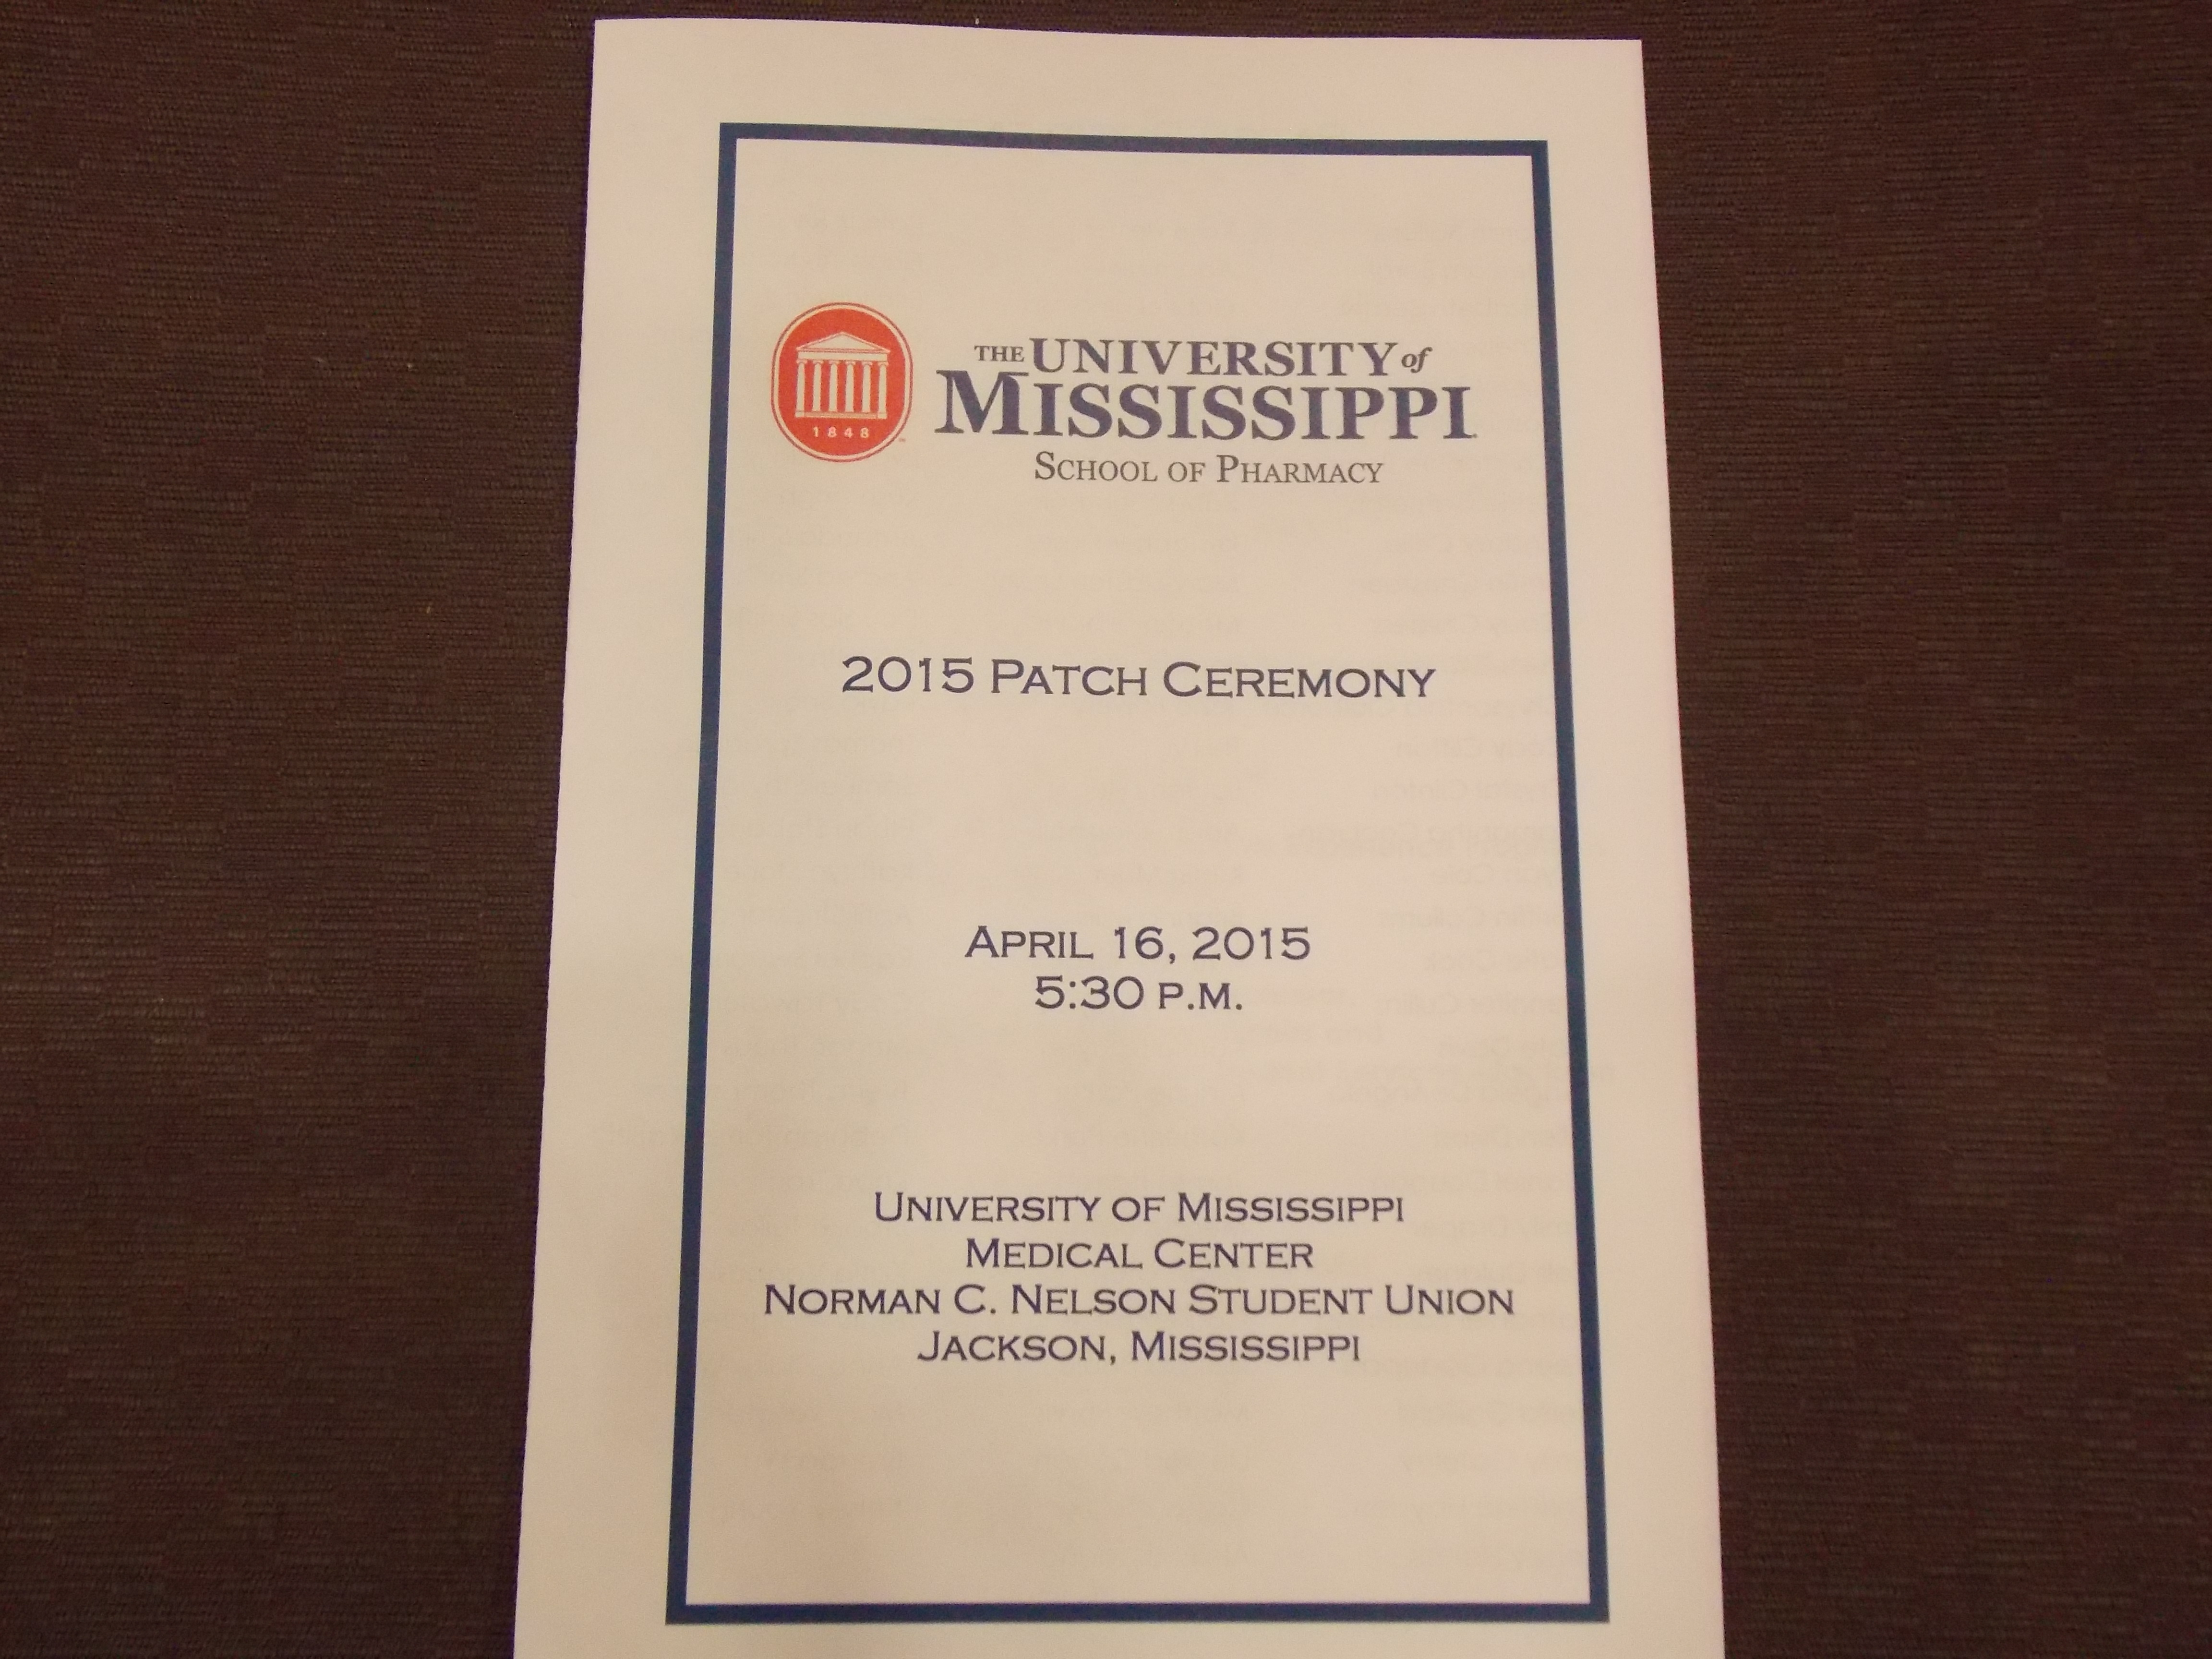 Picture of the program